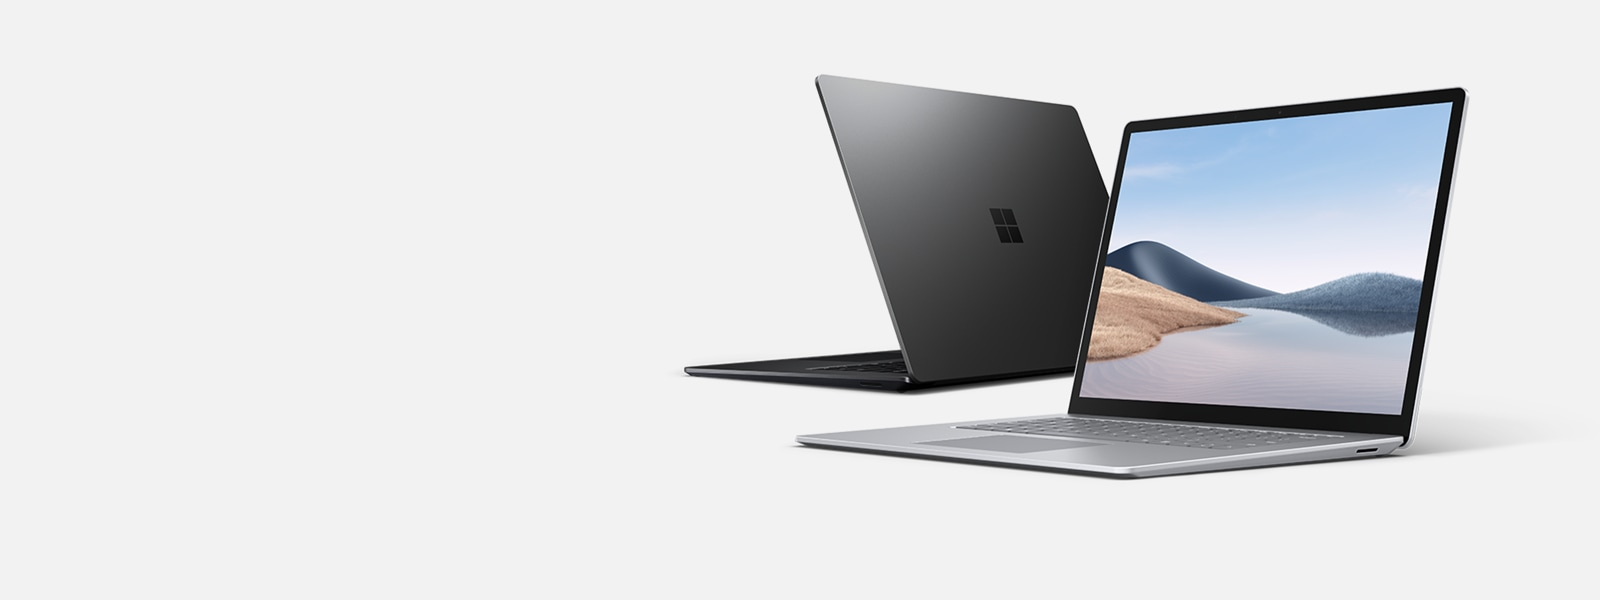 Surface Laptop 4 showing screen and keyboard.